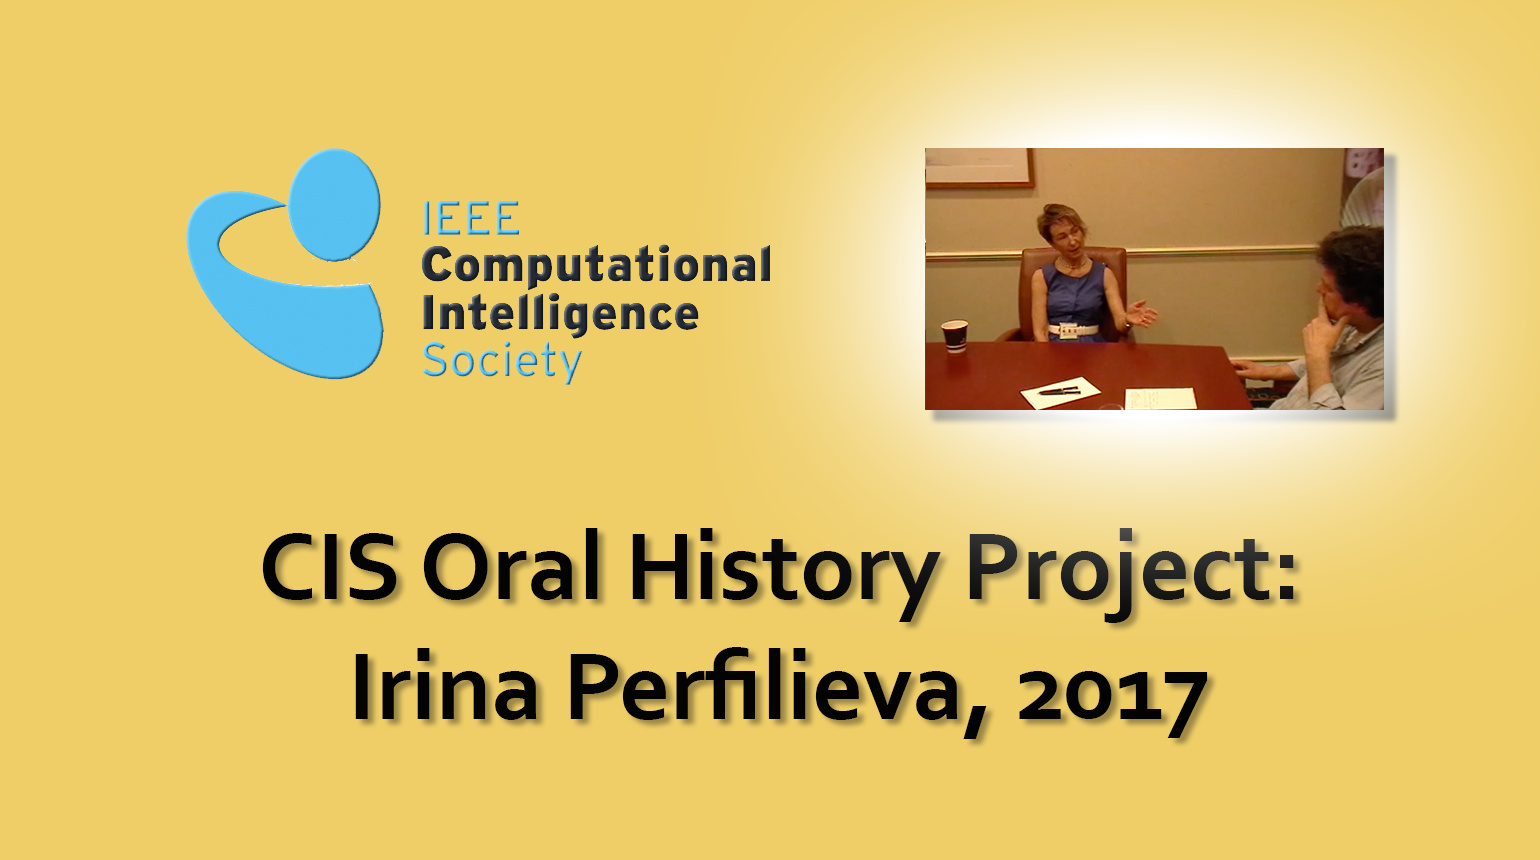 Interview with Irina Perfilieva, 2017: CIS Oral History Project